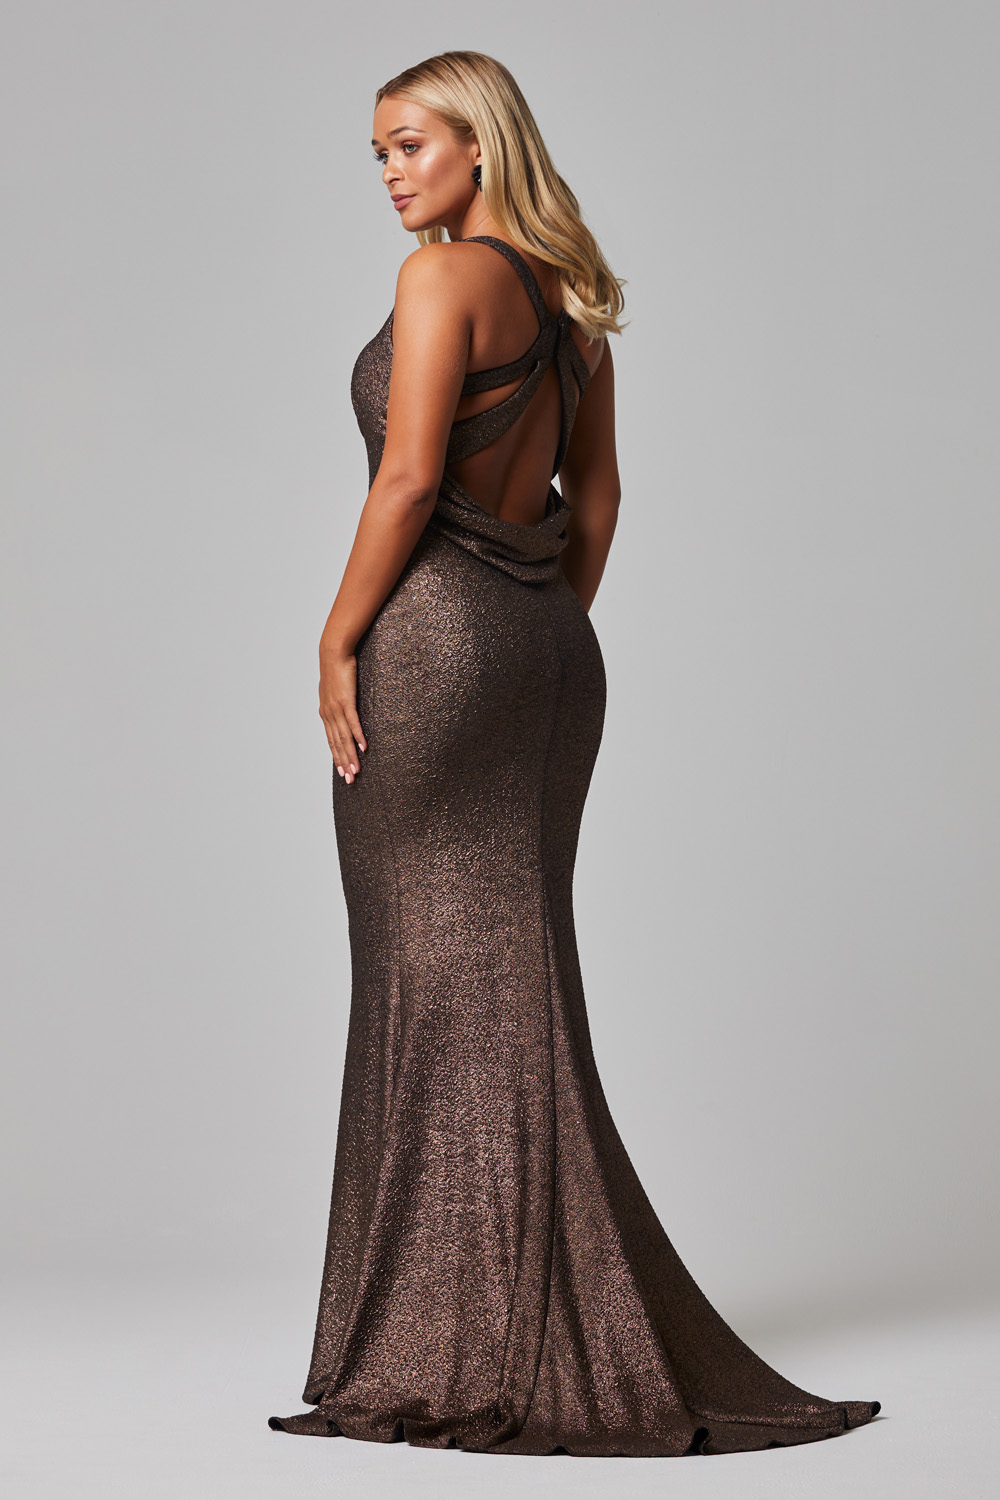 PO705-FALLON-BRONZE-BACK